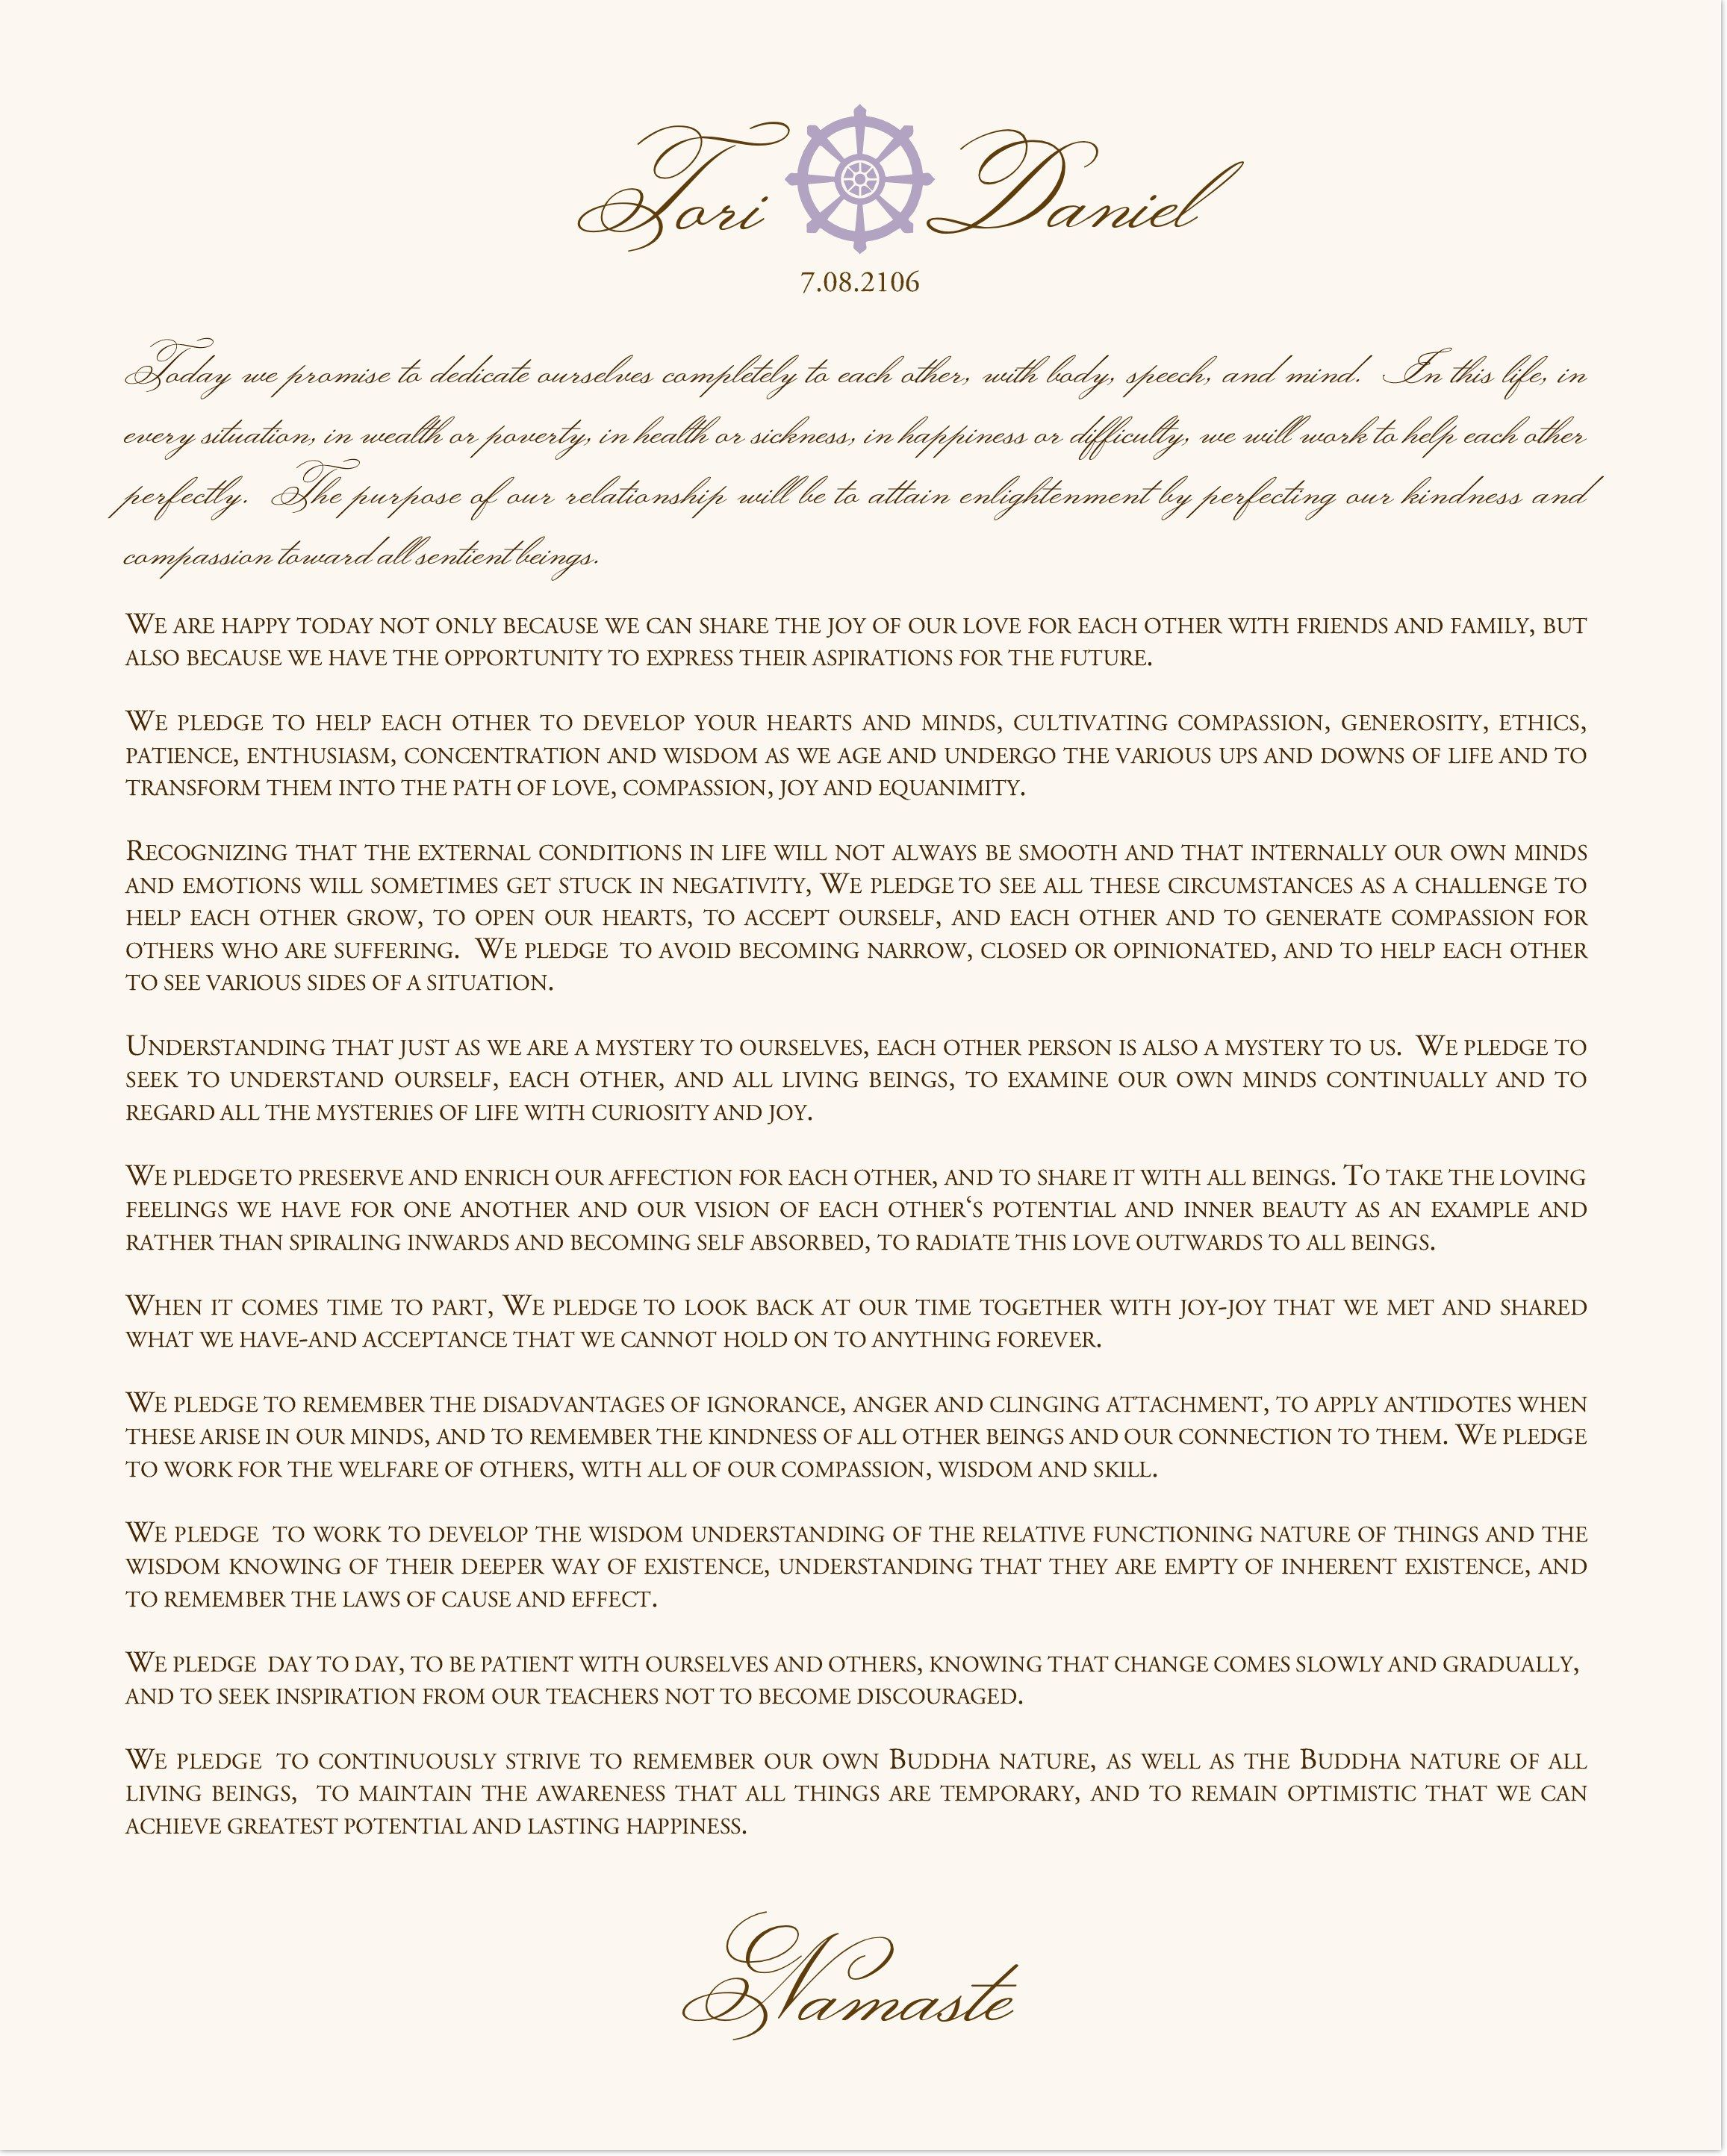 Buddhist Marriage Certificate For Buddhism Wedding Service With Interfaith Vows